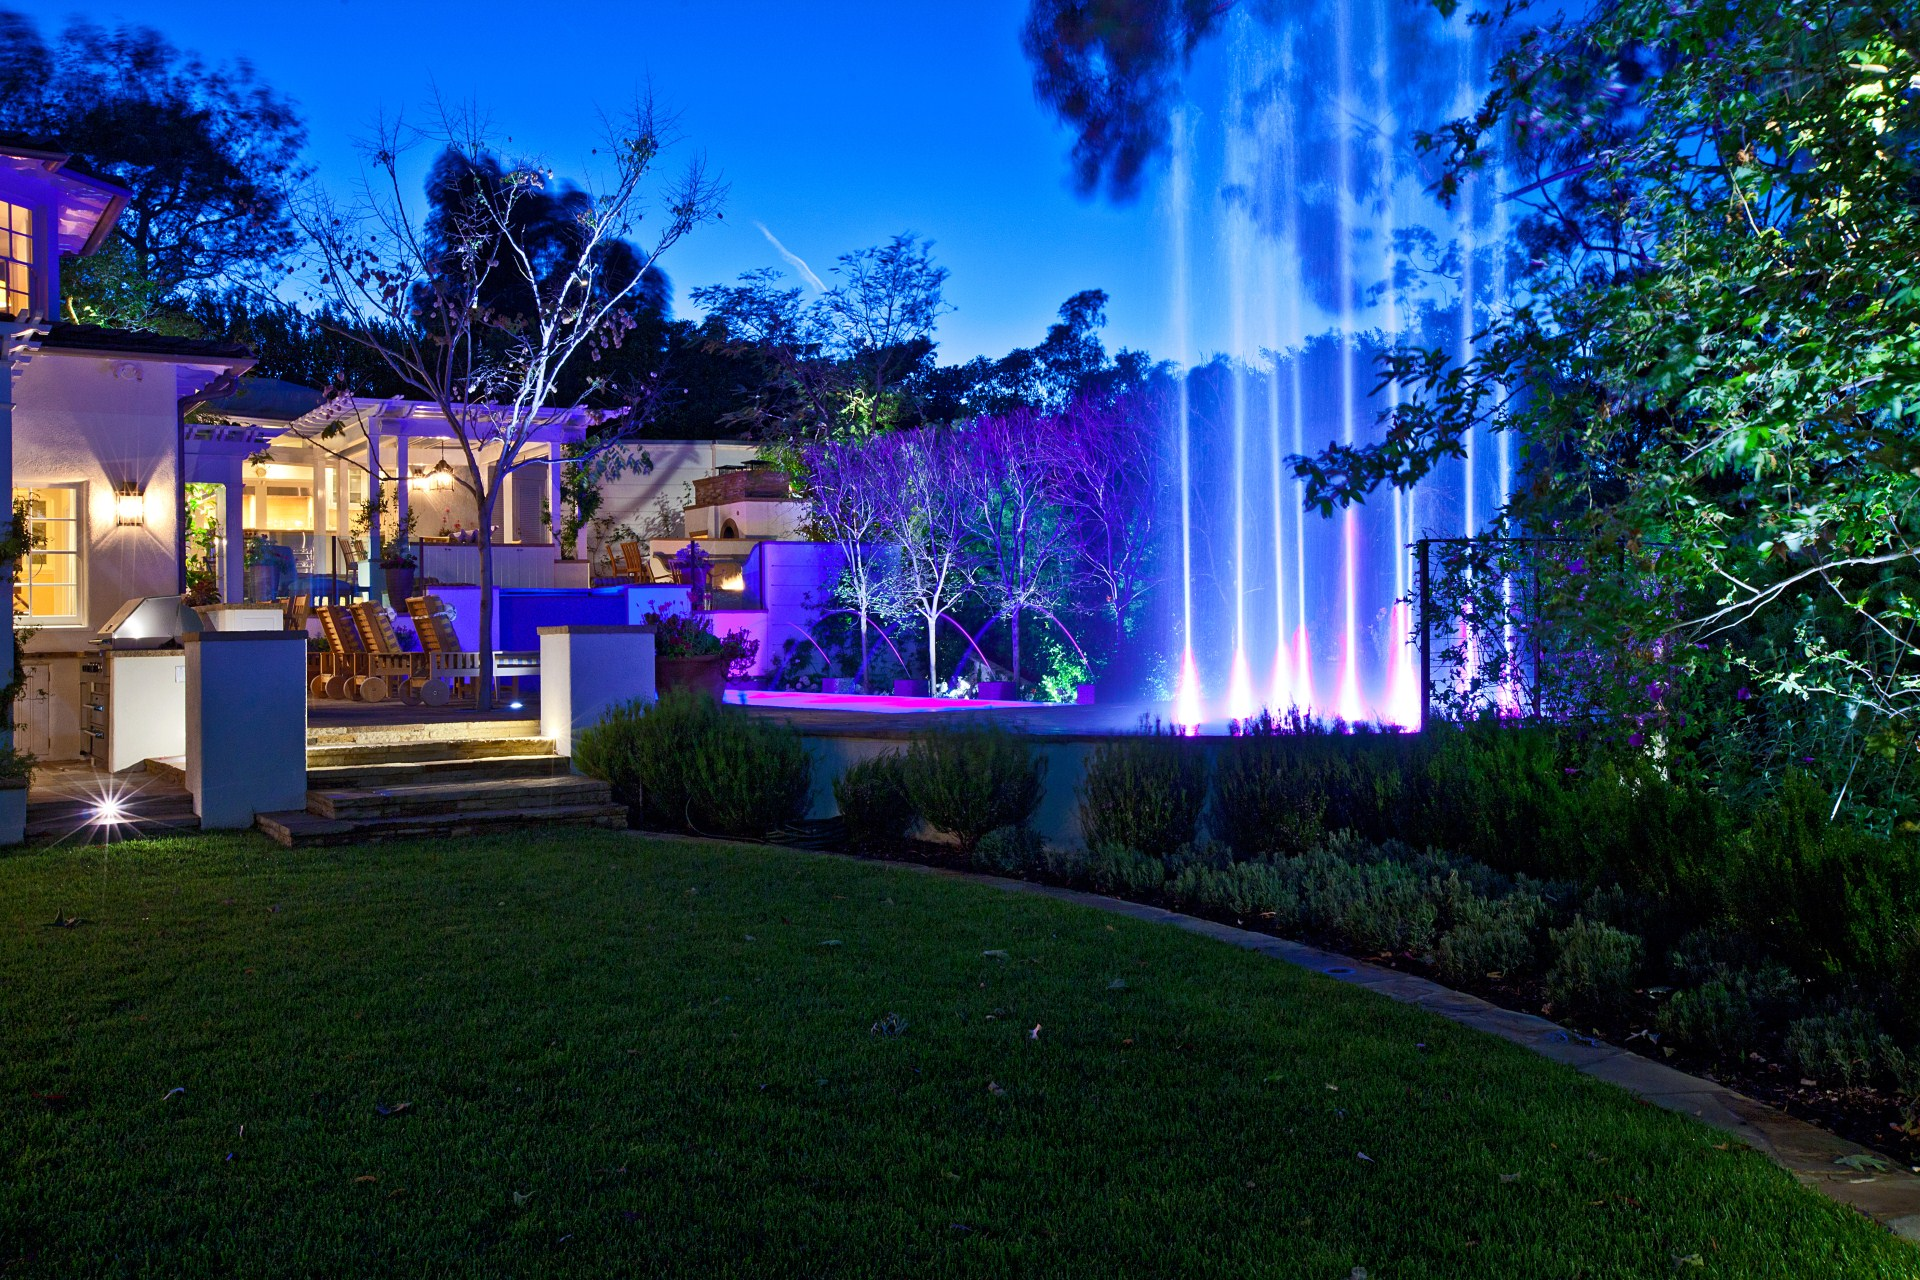 Best Home Theater And Outdoor Space Awards Go To DSI